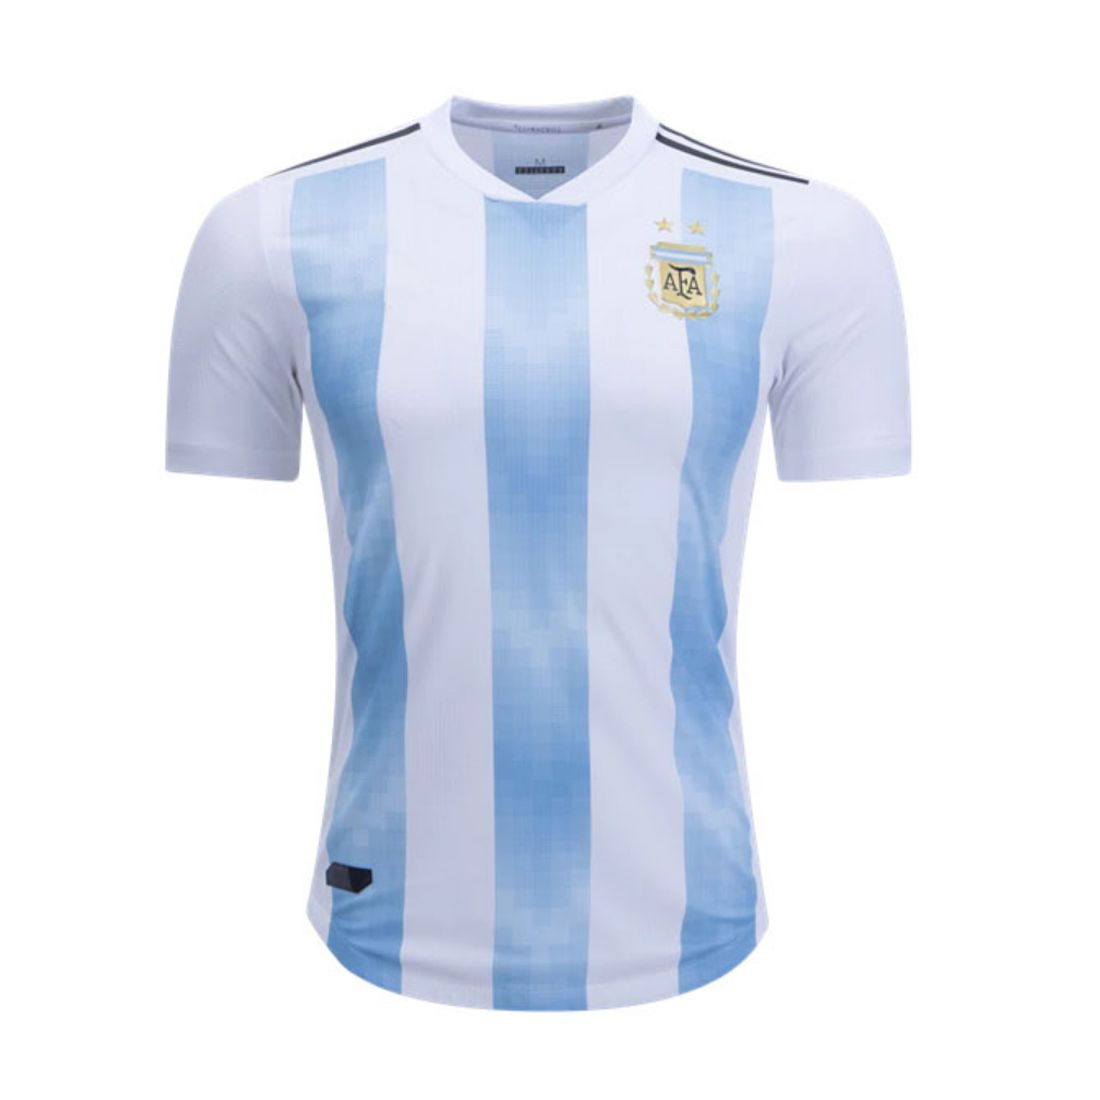 5ba1792ac FIFA World Cup Argentina National Team Home Jersey  Buy Online at Best  Price on Snapdeal